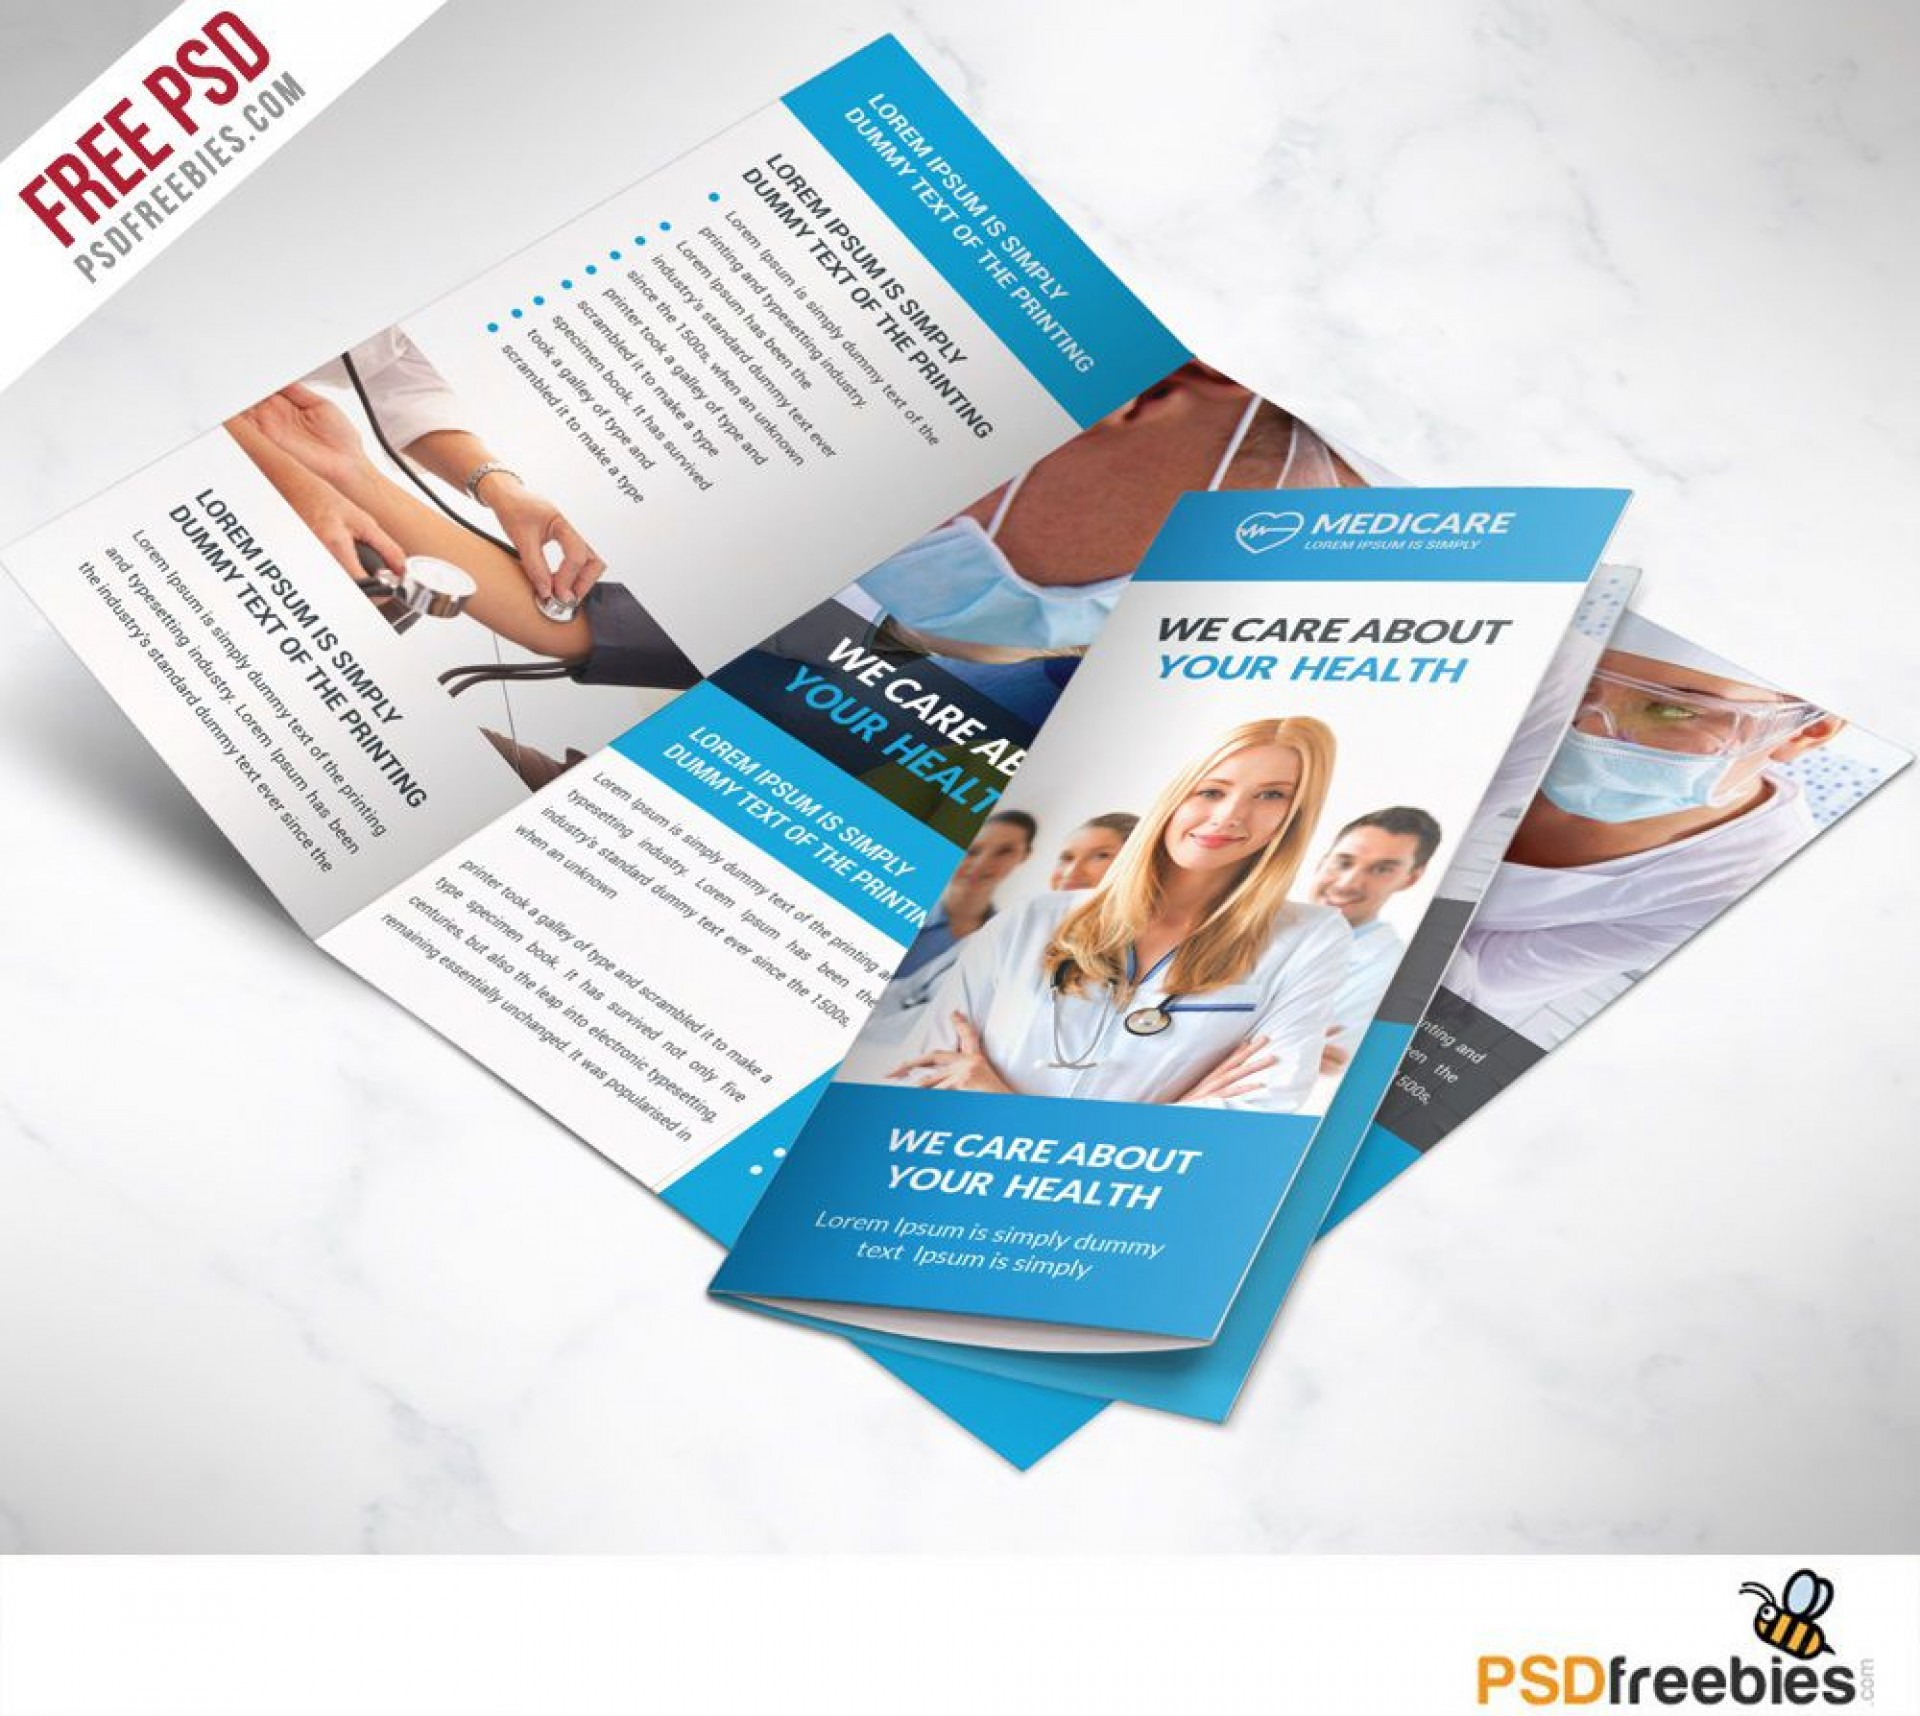 008 Stupendou Adobe Photoshop Brochure Template Free Download Inspiration 1920